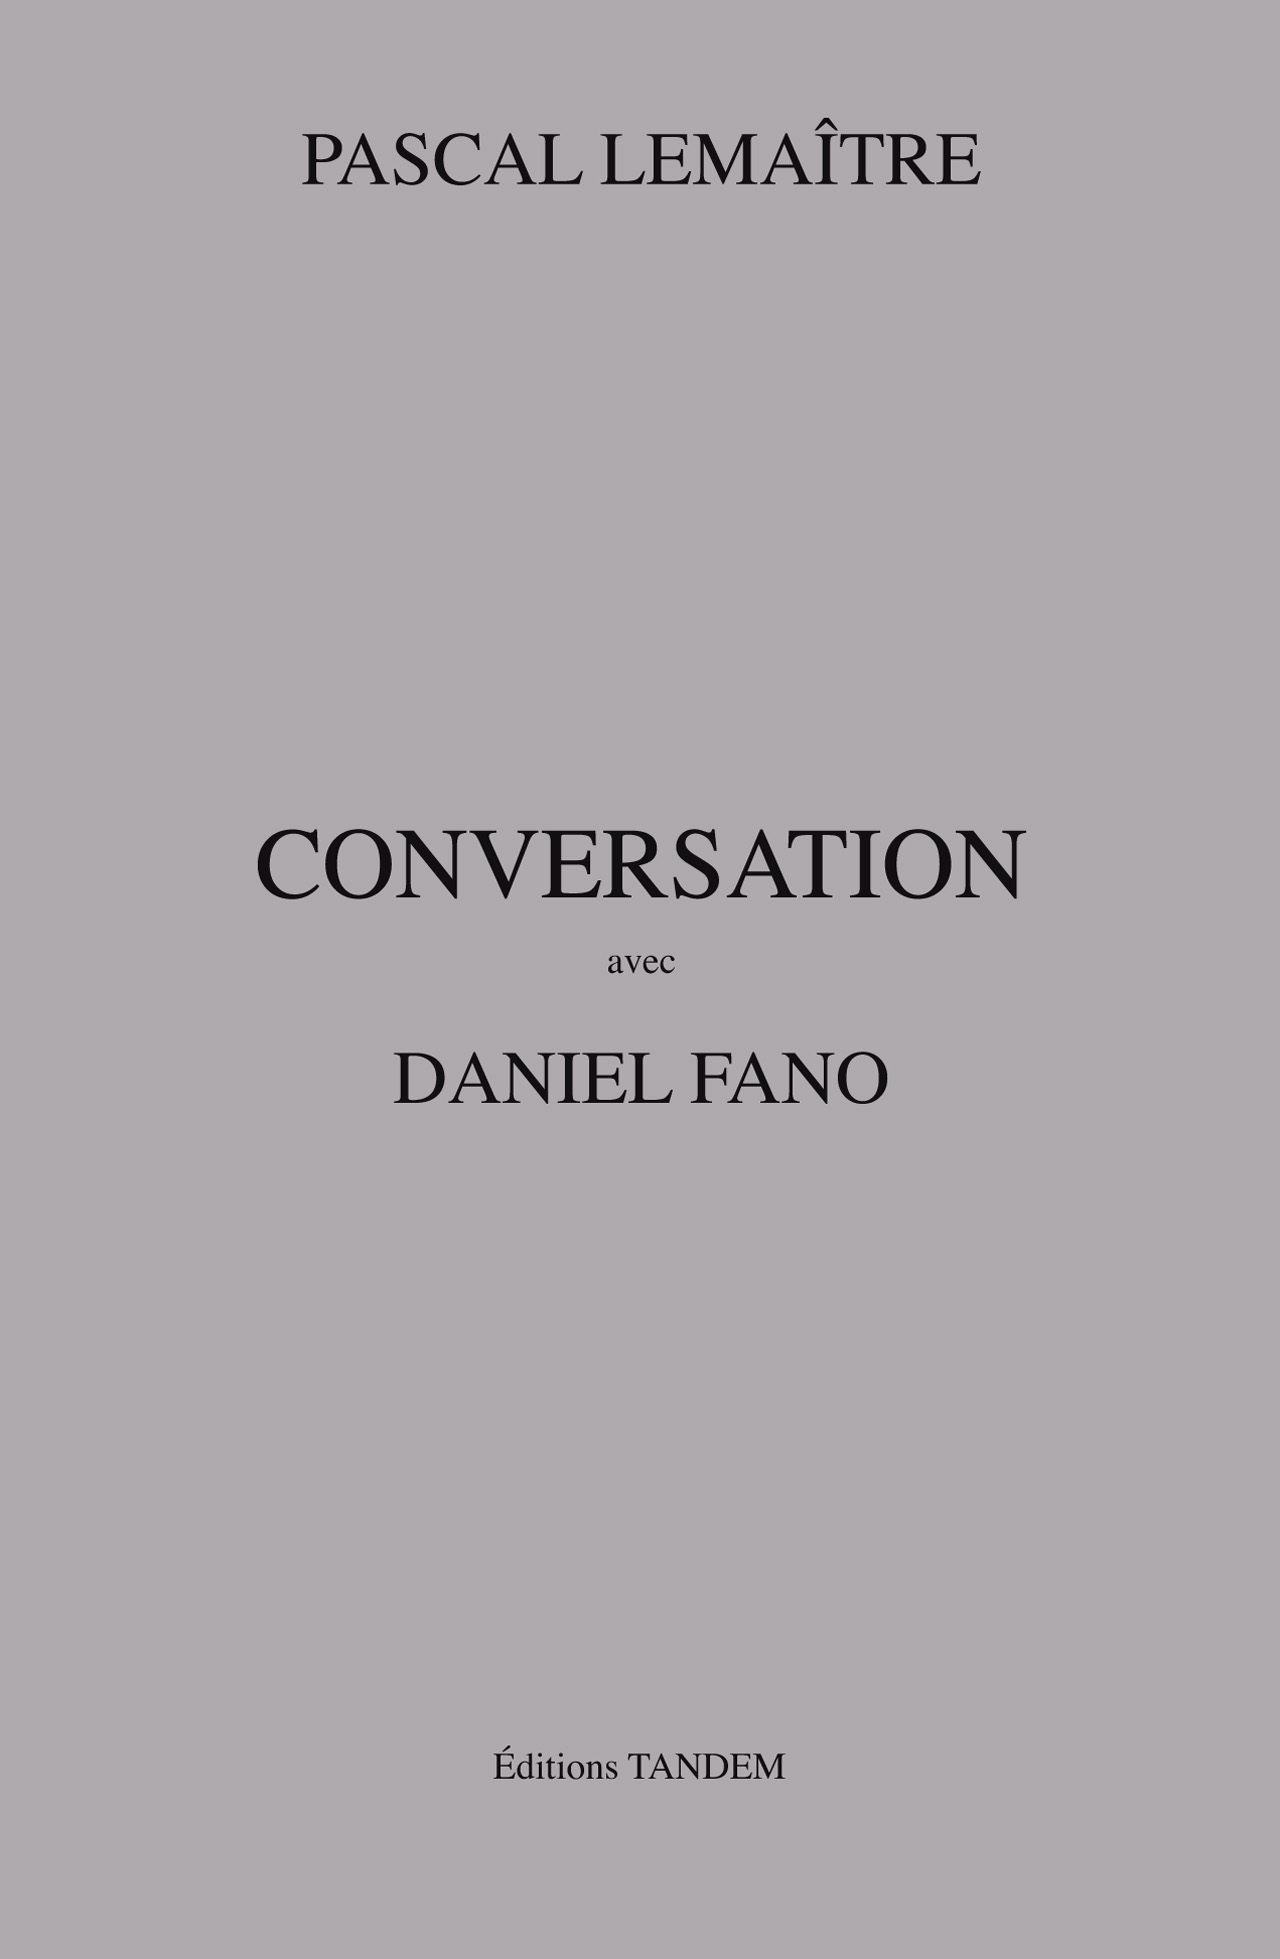 Conversation with Daniel Fano published by Editions Tandem.